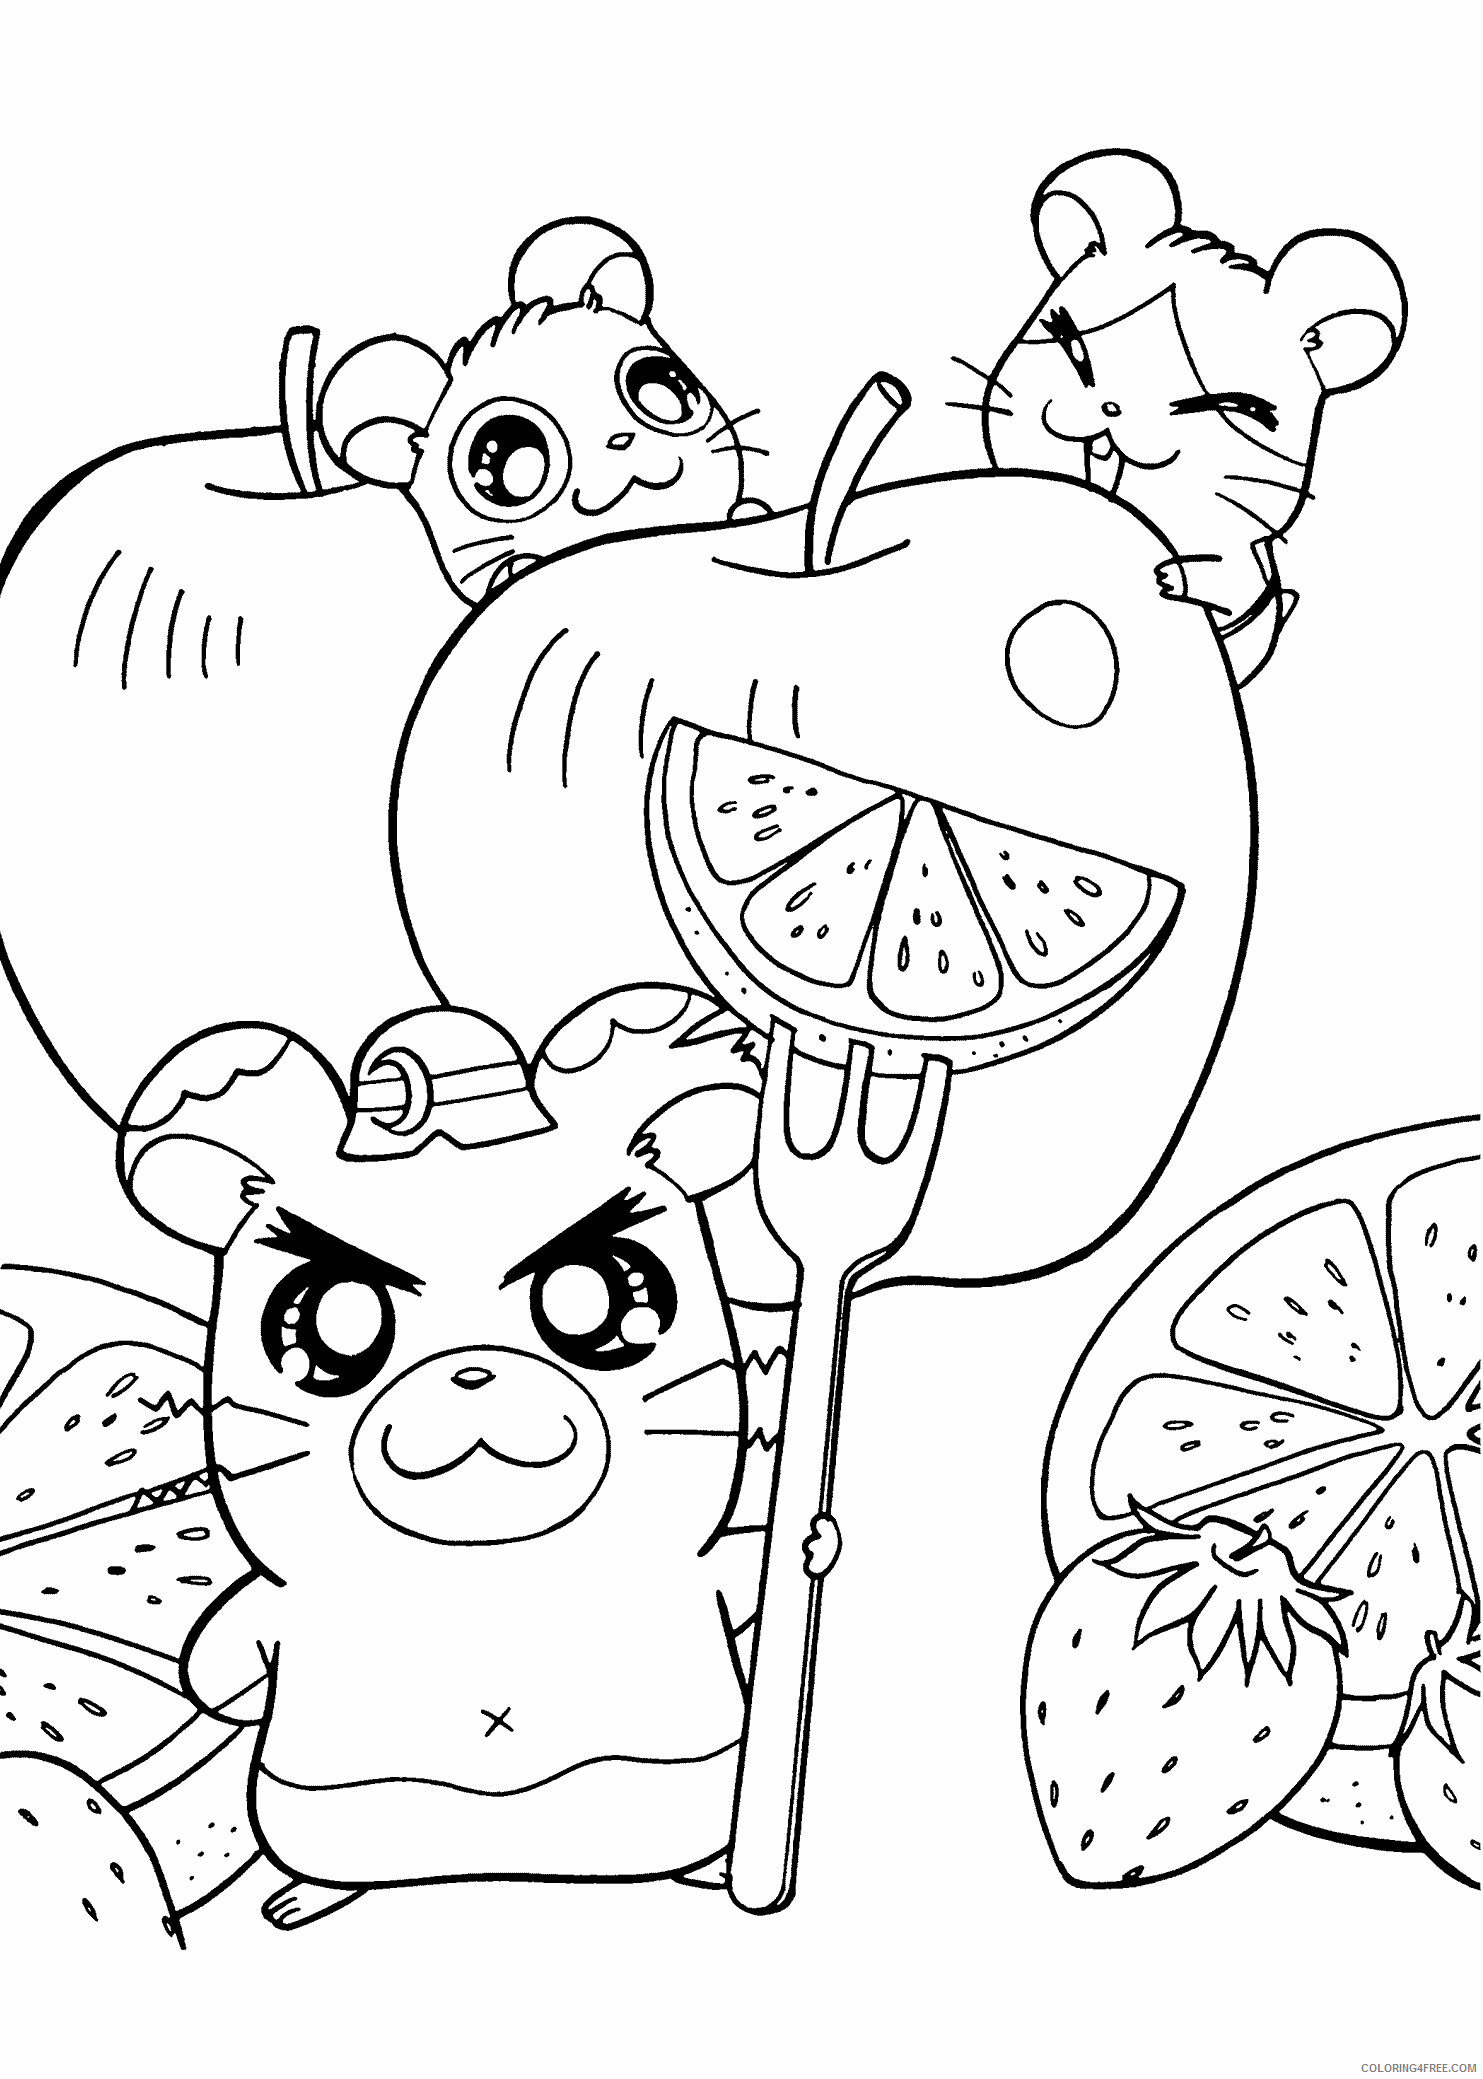 Az Hamtaro Coloring Pages Printable Sheets Anime Special A Pages 2021 a 4524 Coloring4free